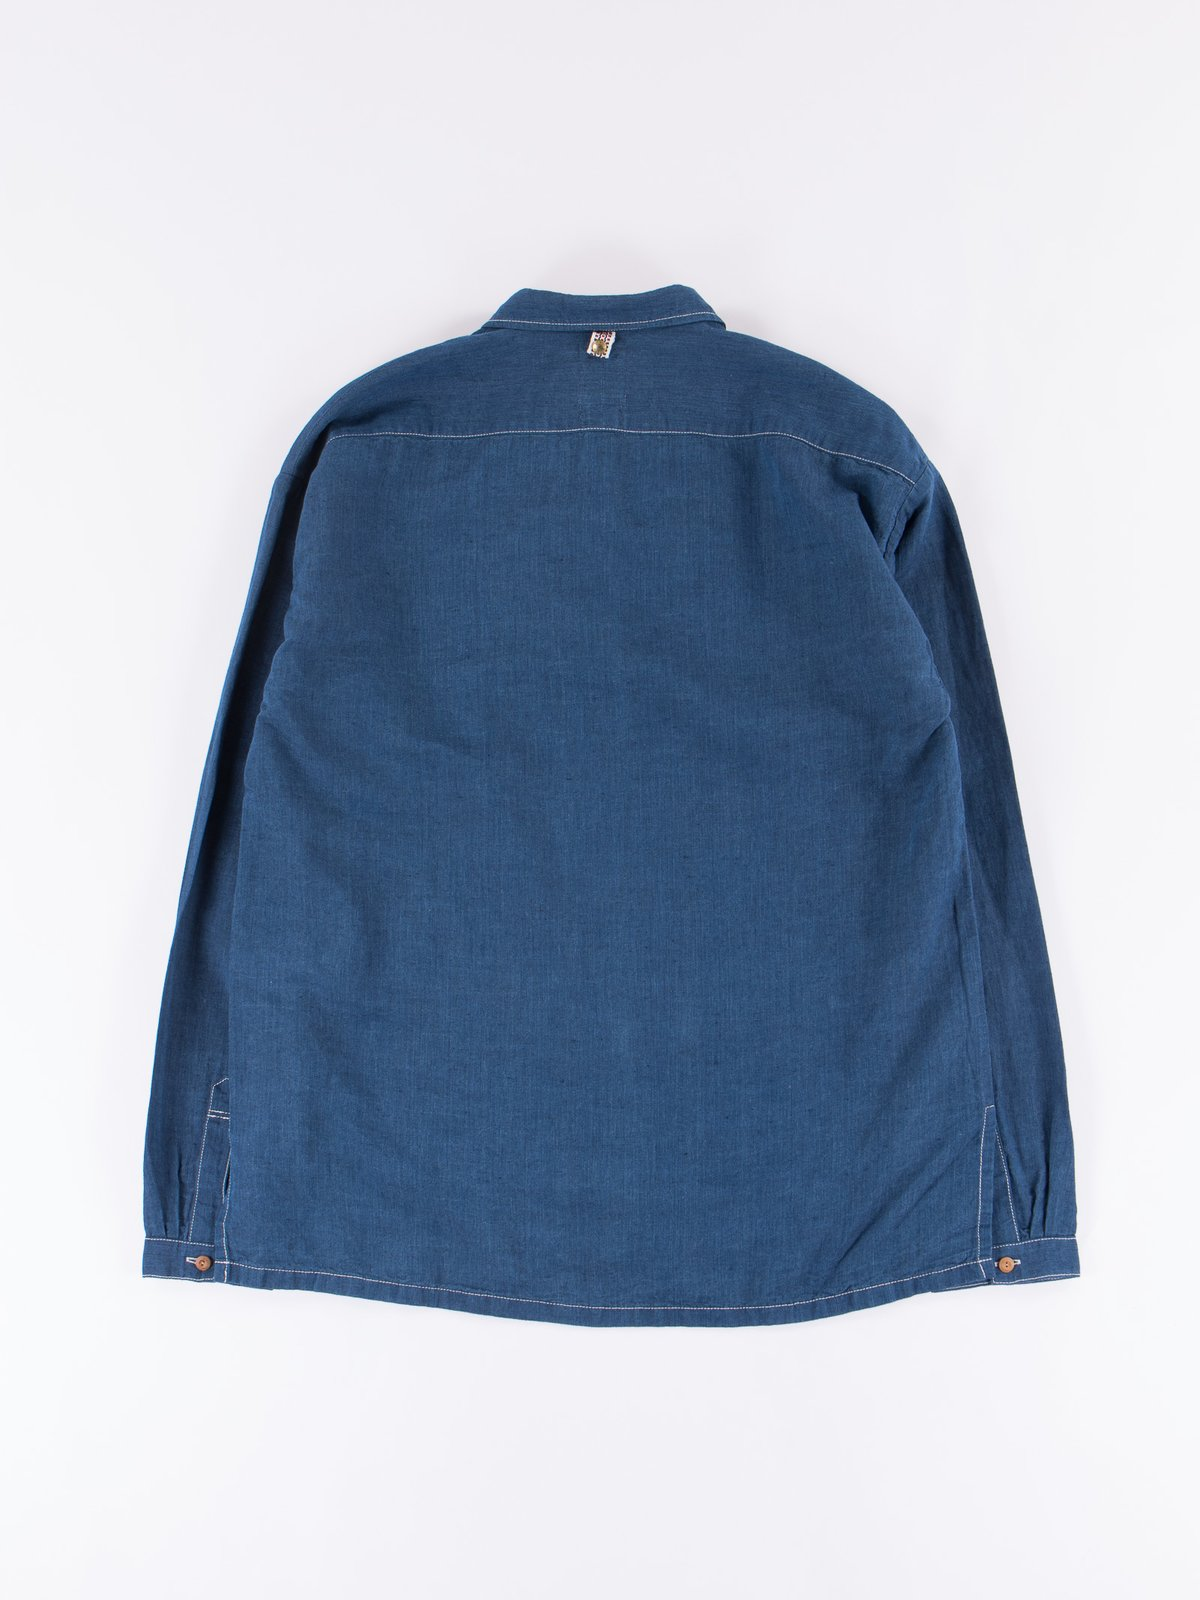 Navy Chambray Kerchief Tunic Shirt - Image 6